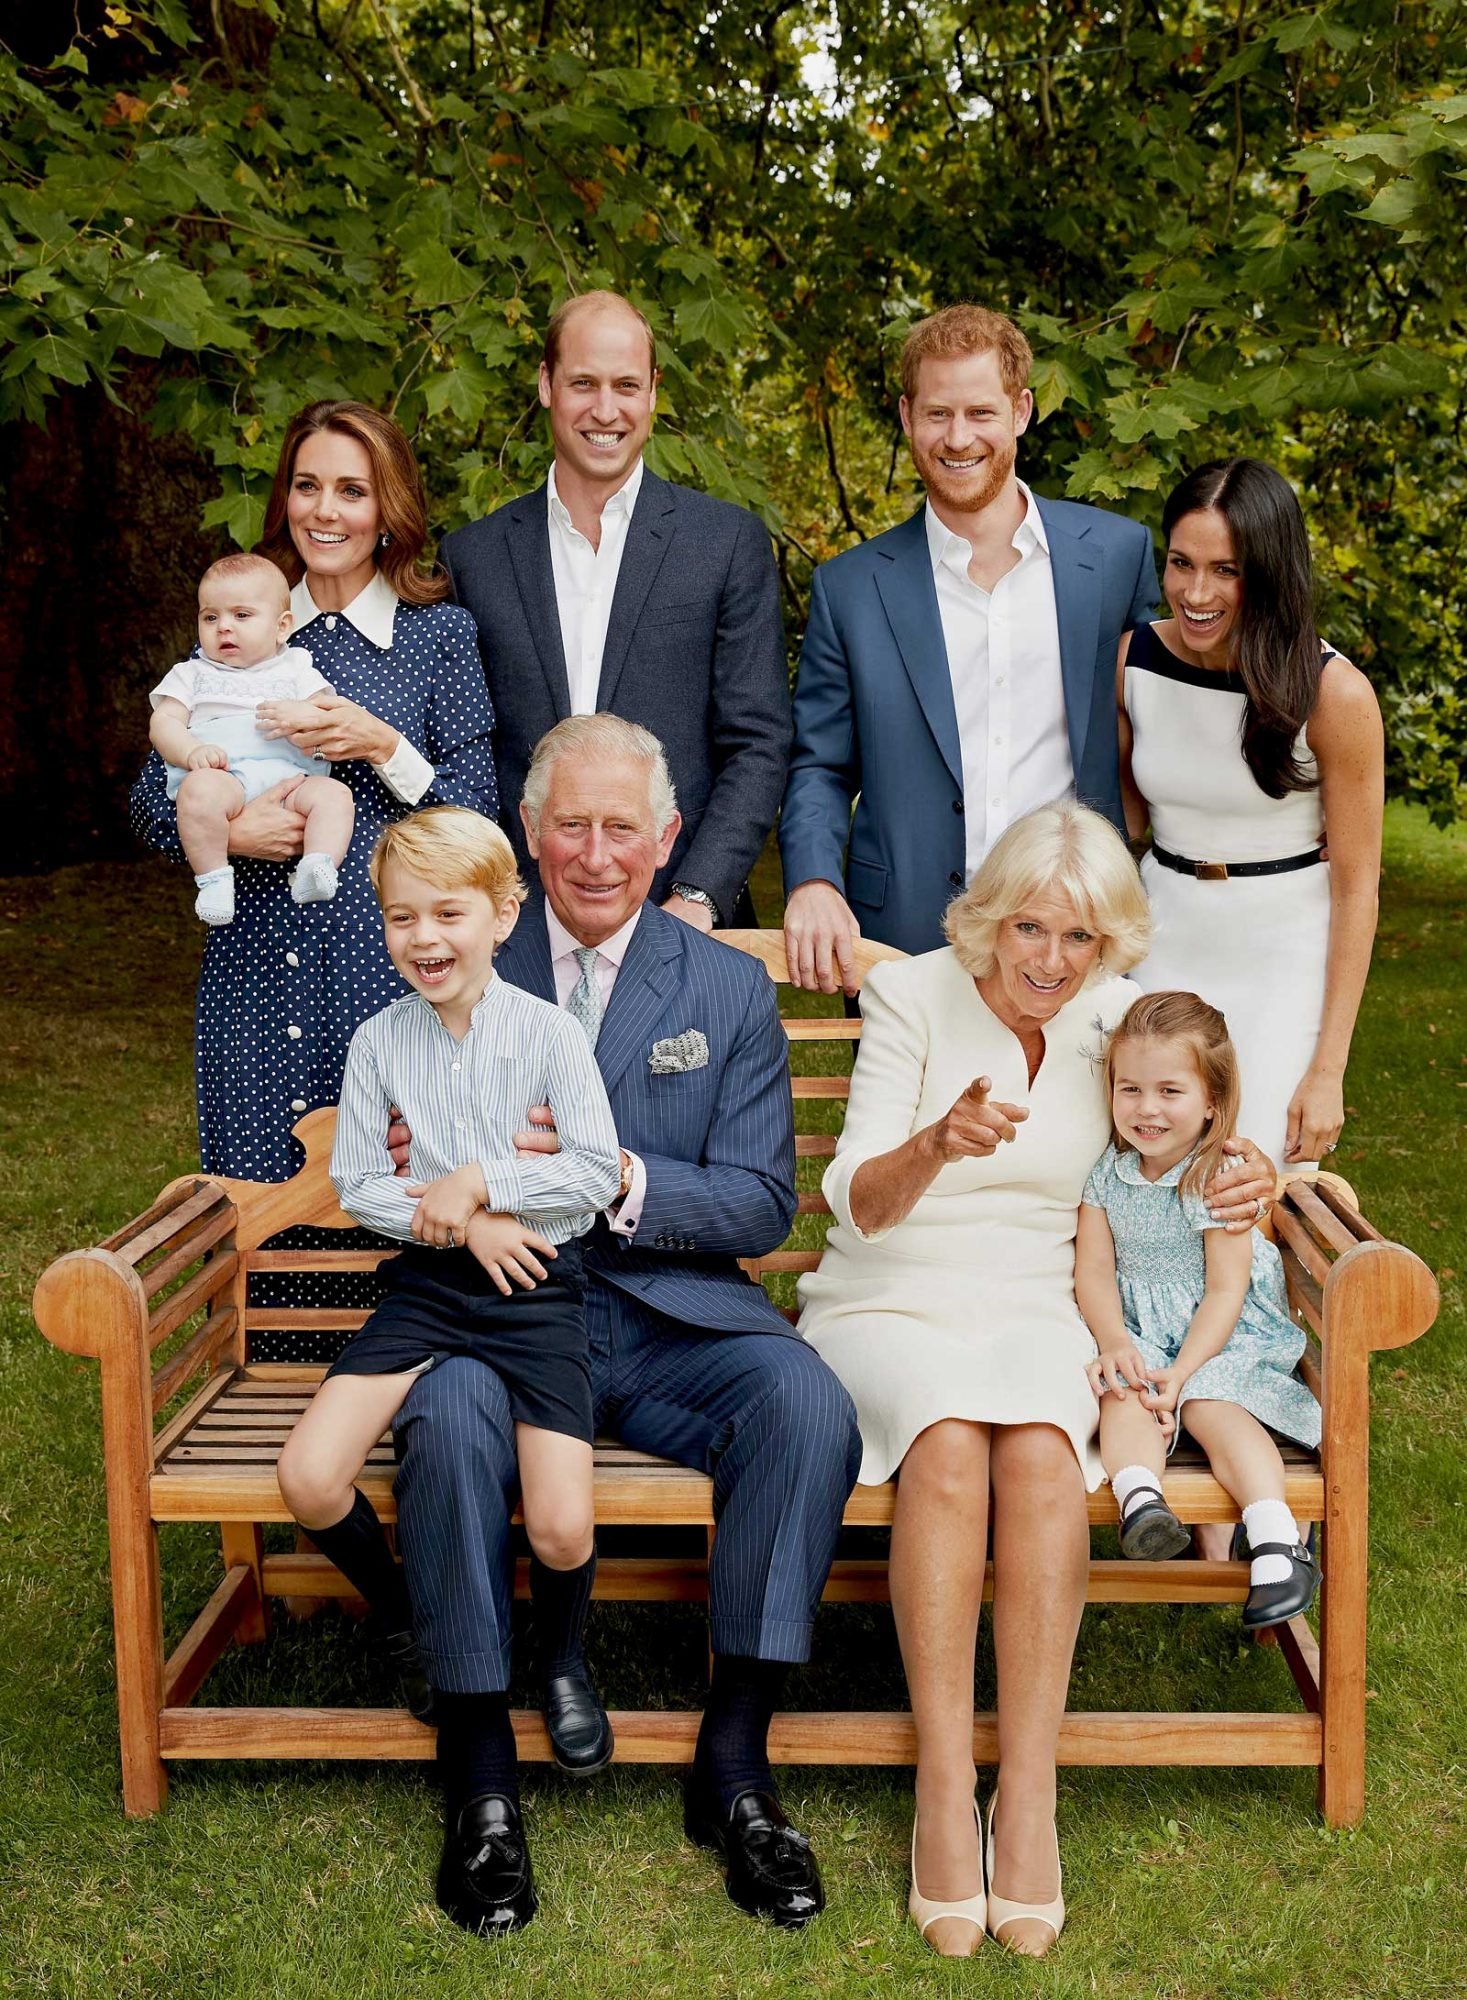 Two New Royal Family Portraits Were Released for Prince Charles' 70th Birthday, and They Are Undeniably Sweet